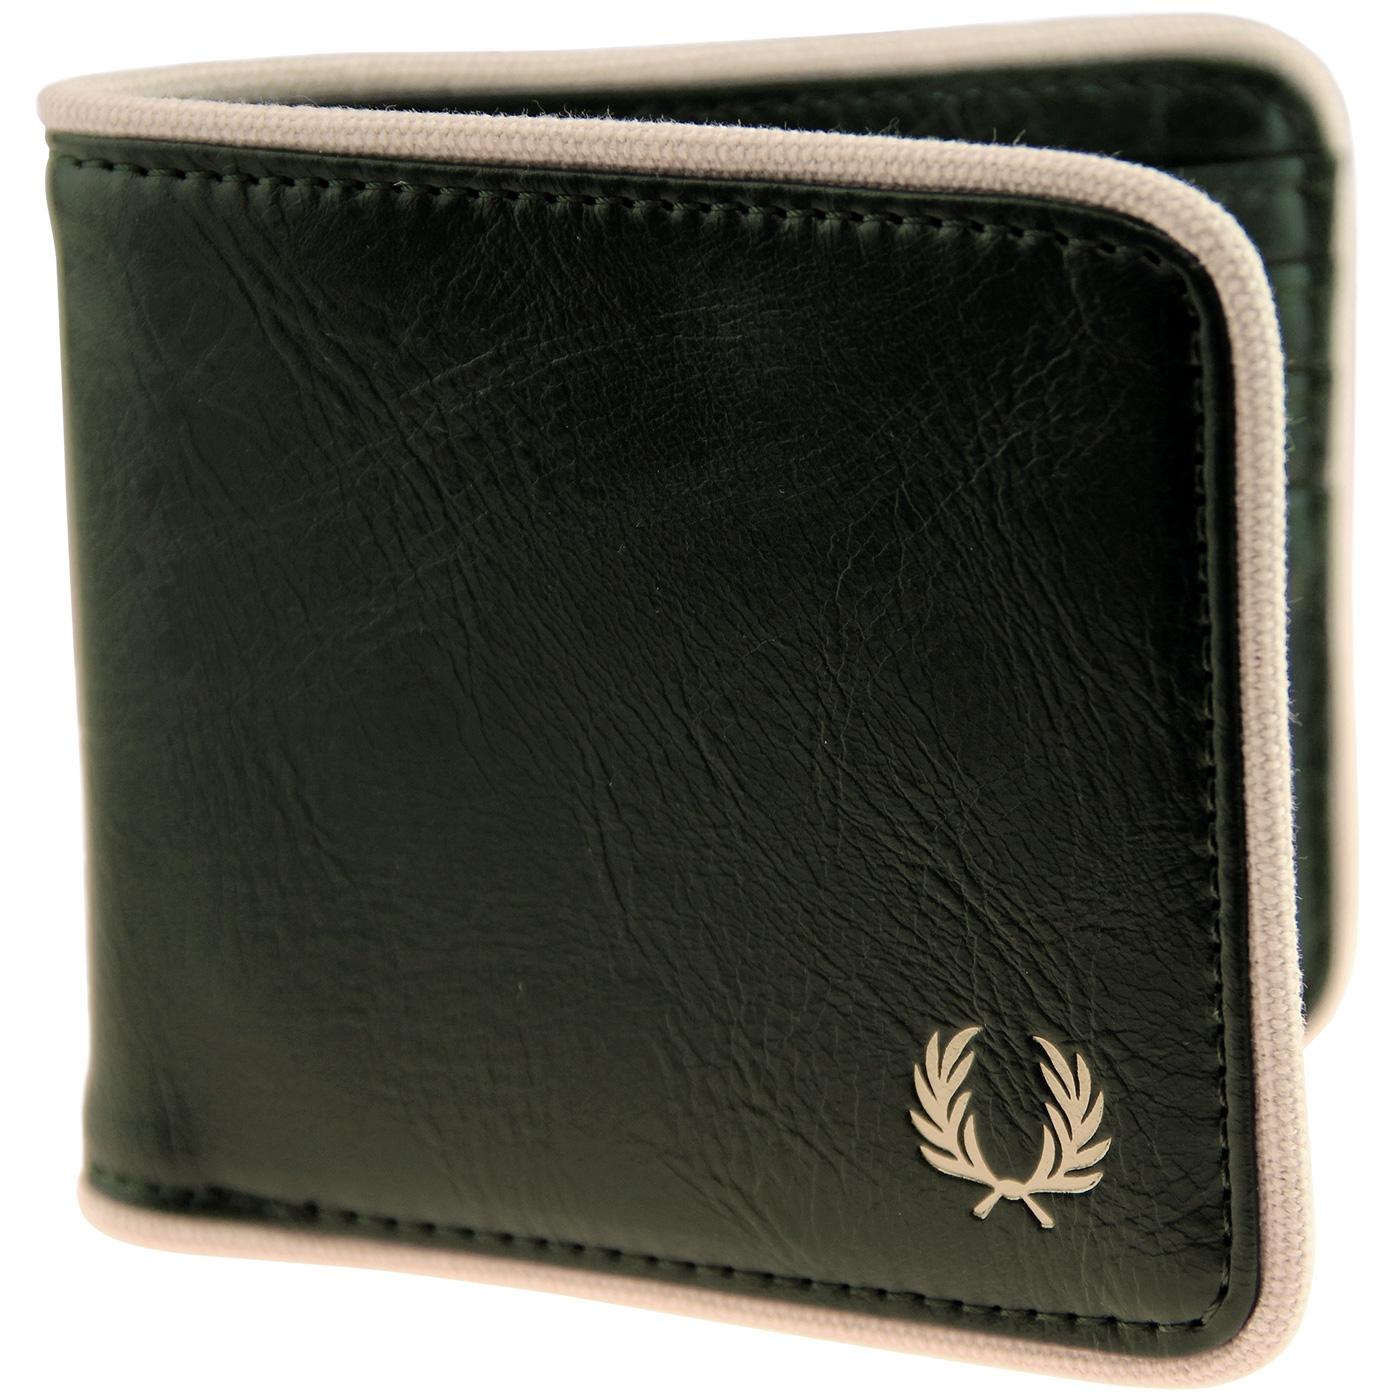 FRED PERRY Classic Logo Billfold Wallet - Forest